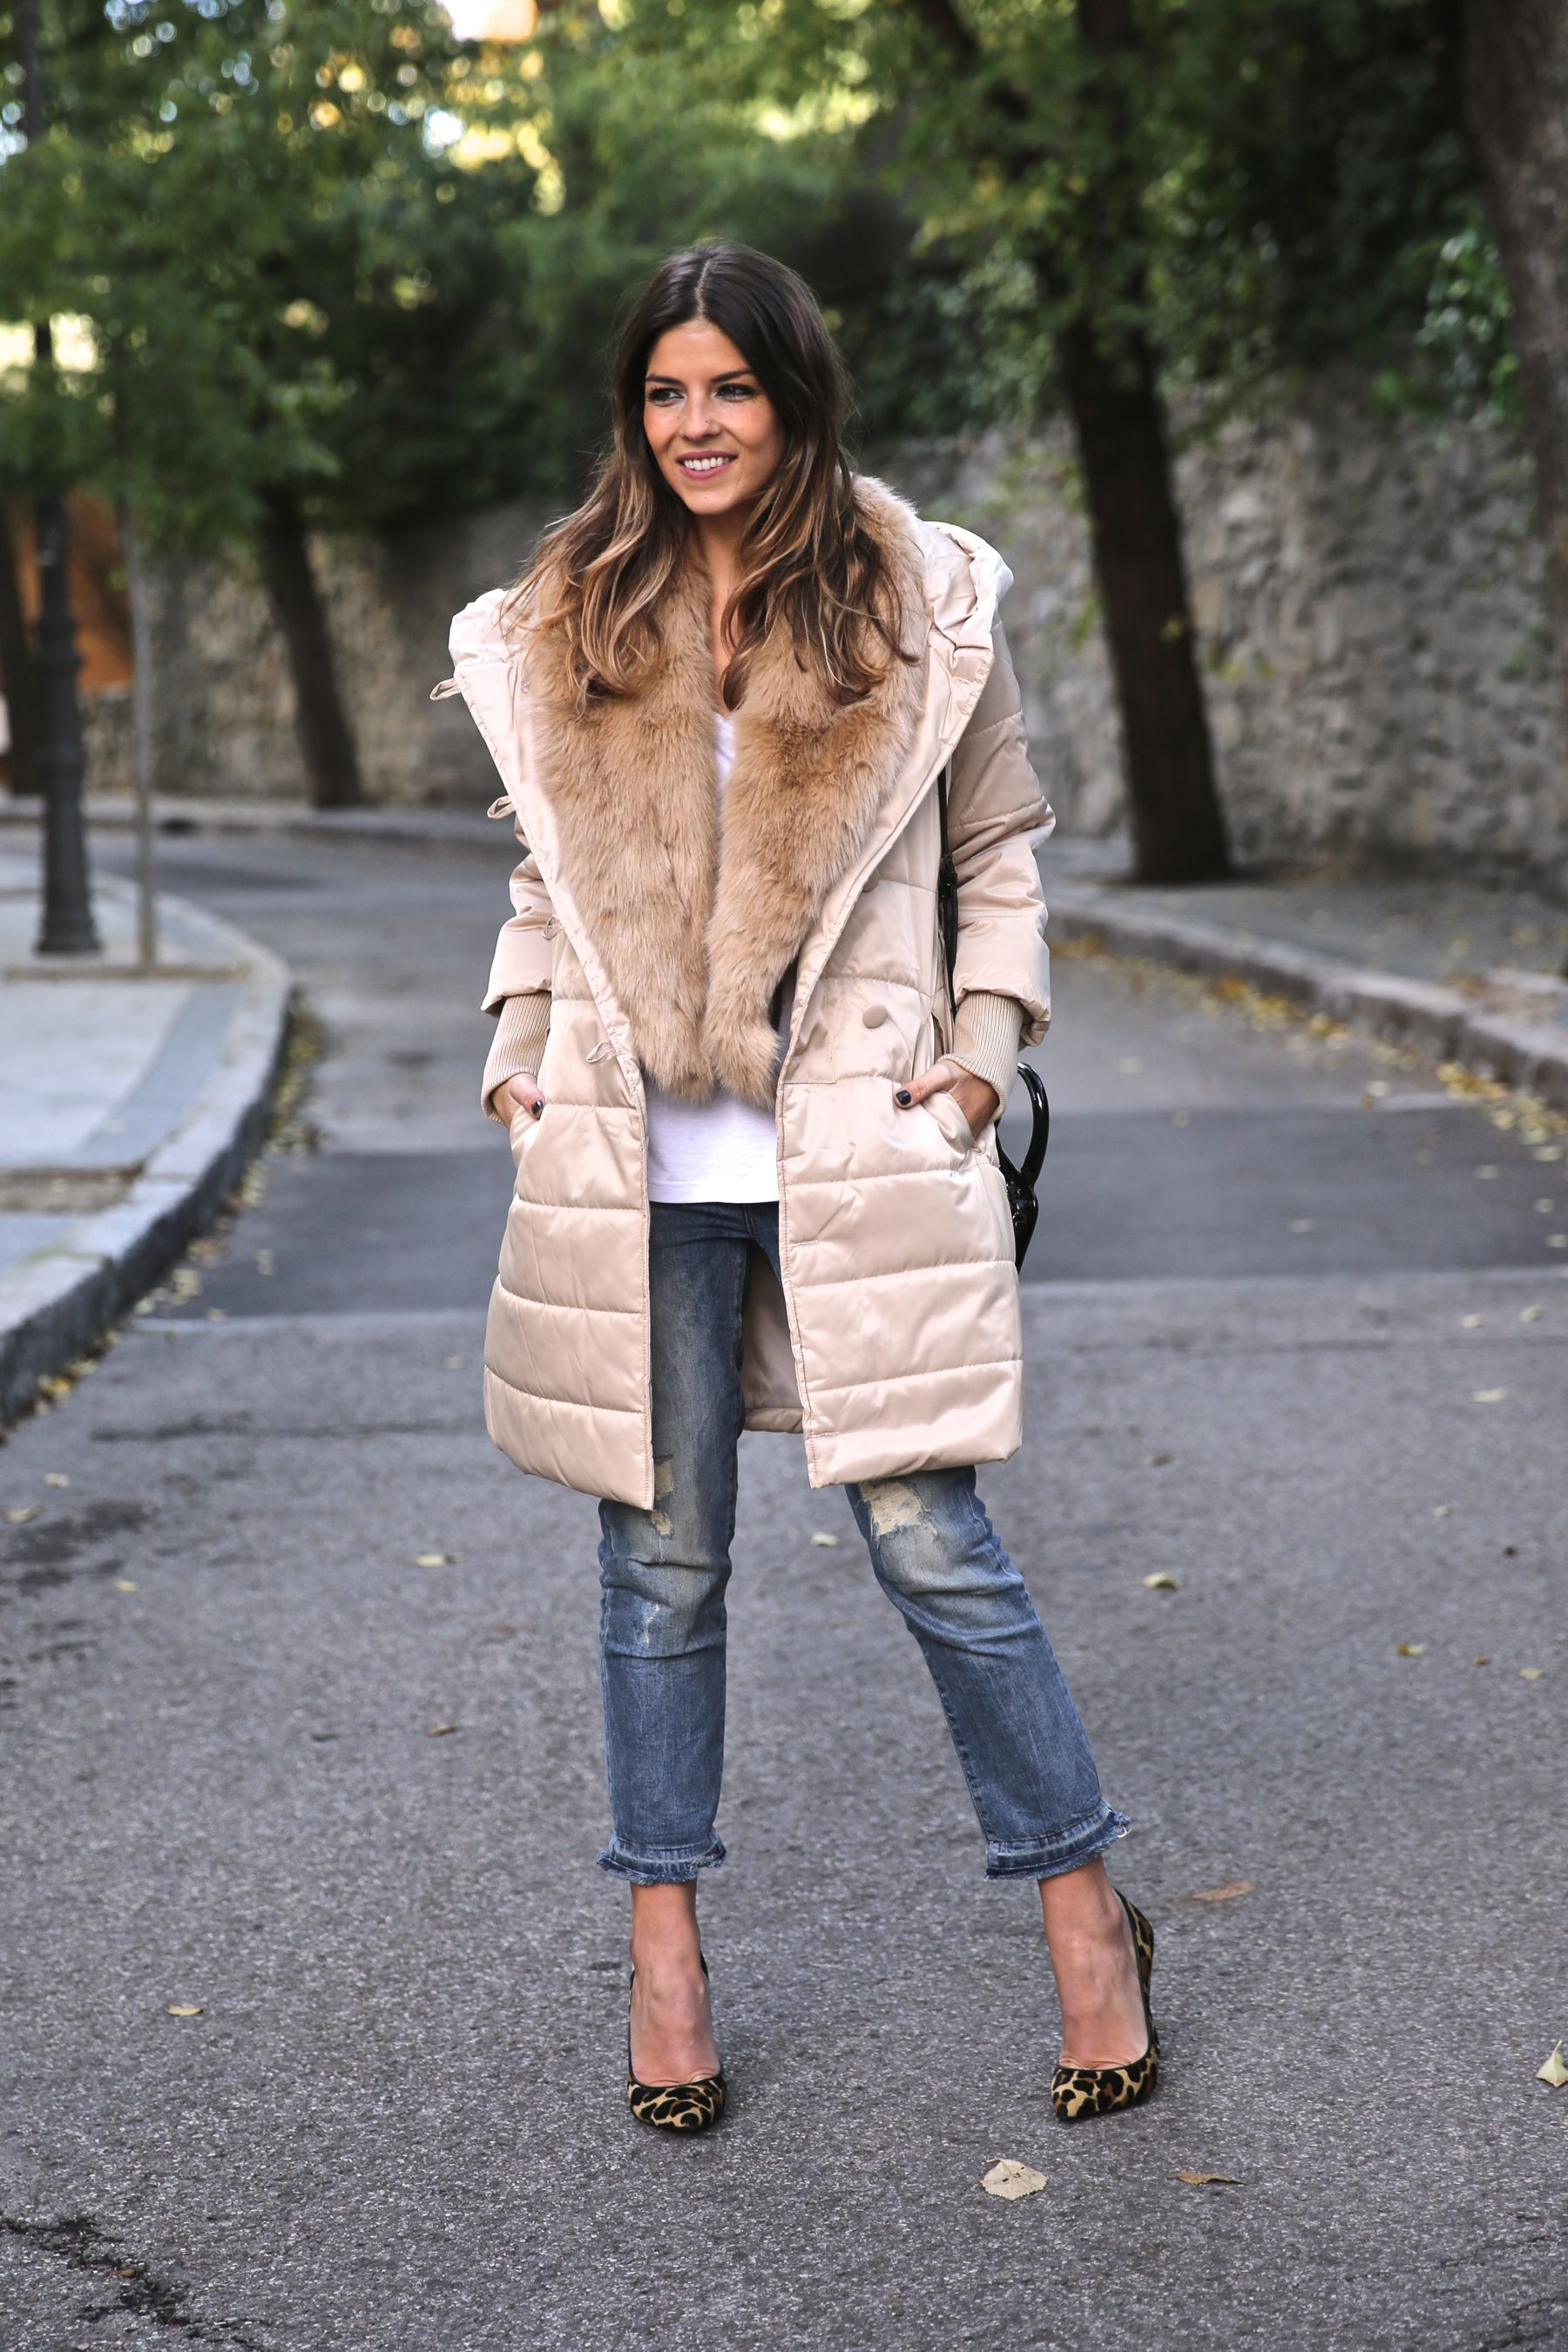 Winter look with beige coat, boyfriend jeans and leo pumps. Look de invierno con abrigo beige, vaqueros boyfriend y estiletos leopardo